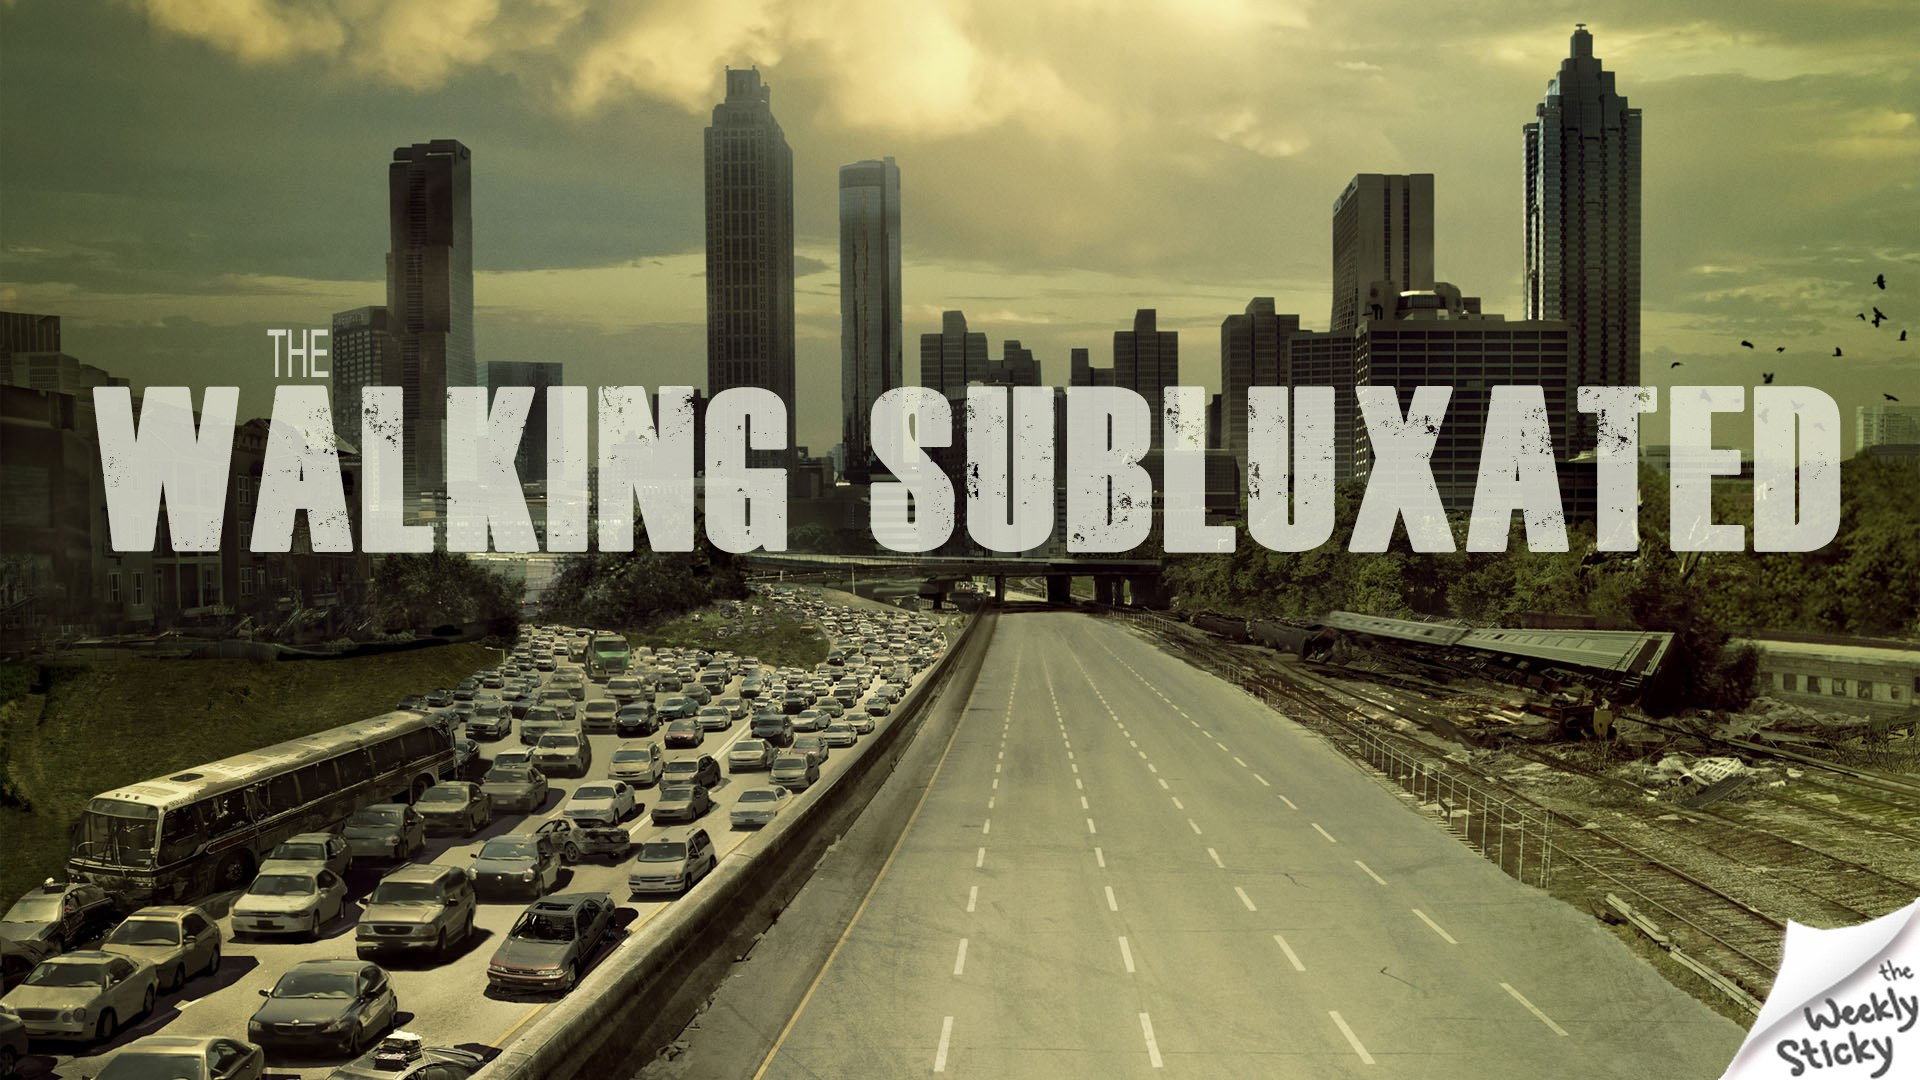 Walking Subluxated